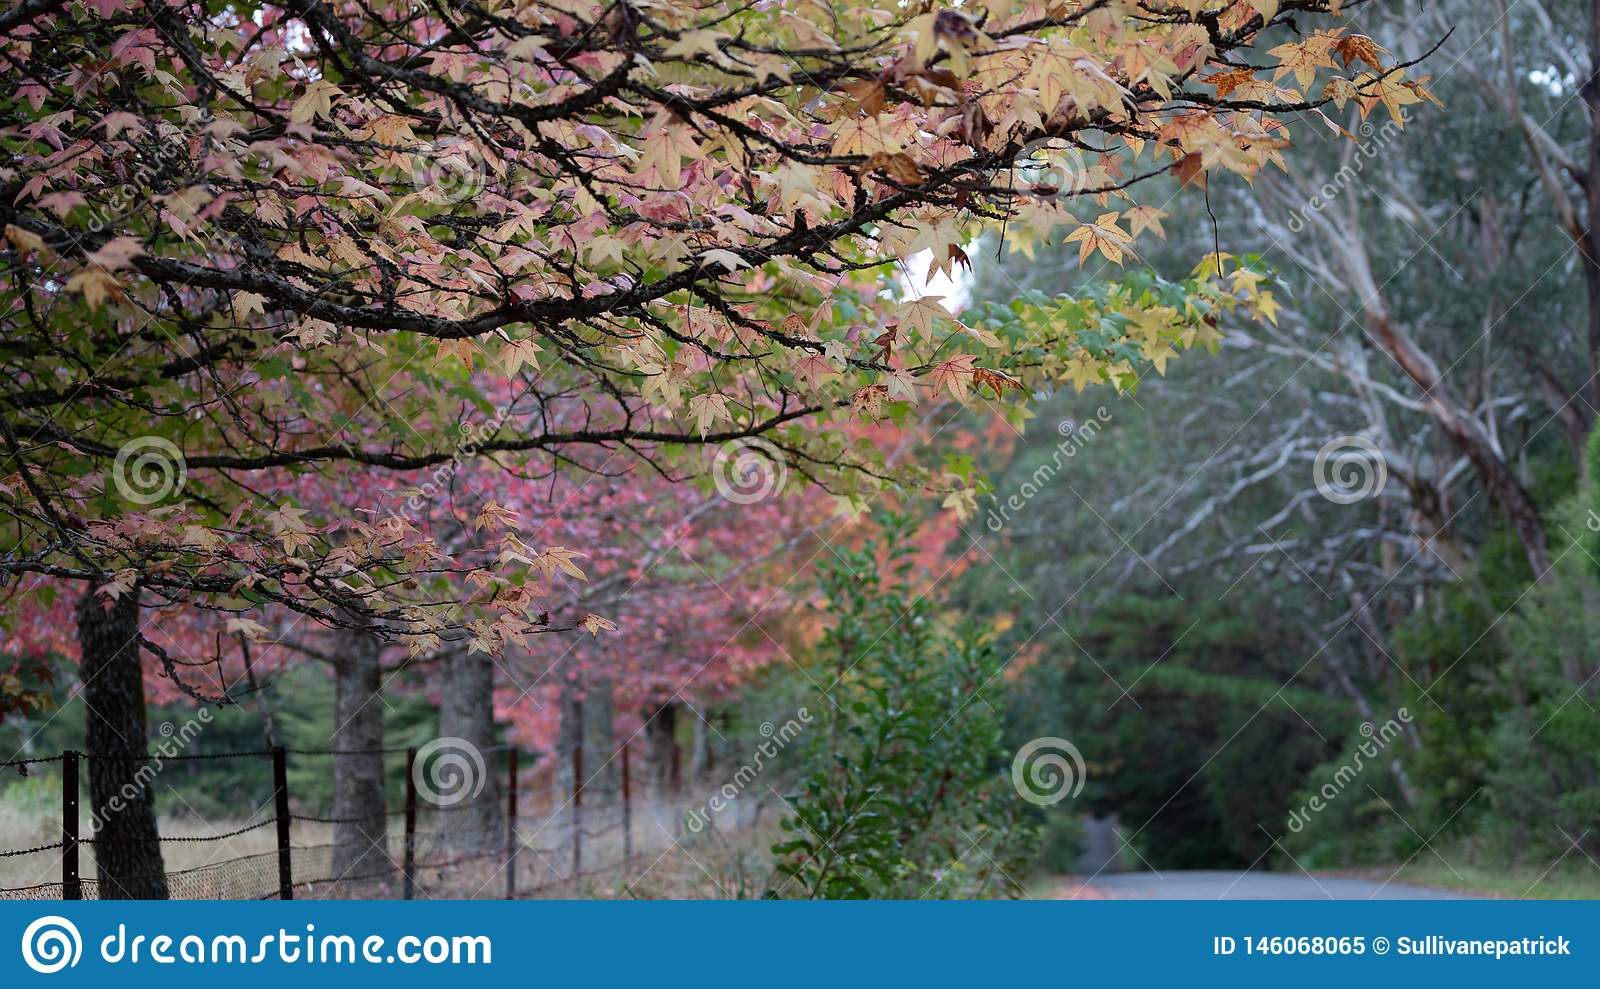 Autumn leaves on a maple tree